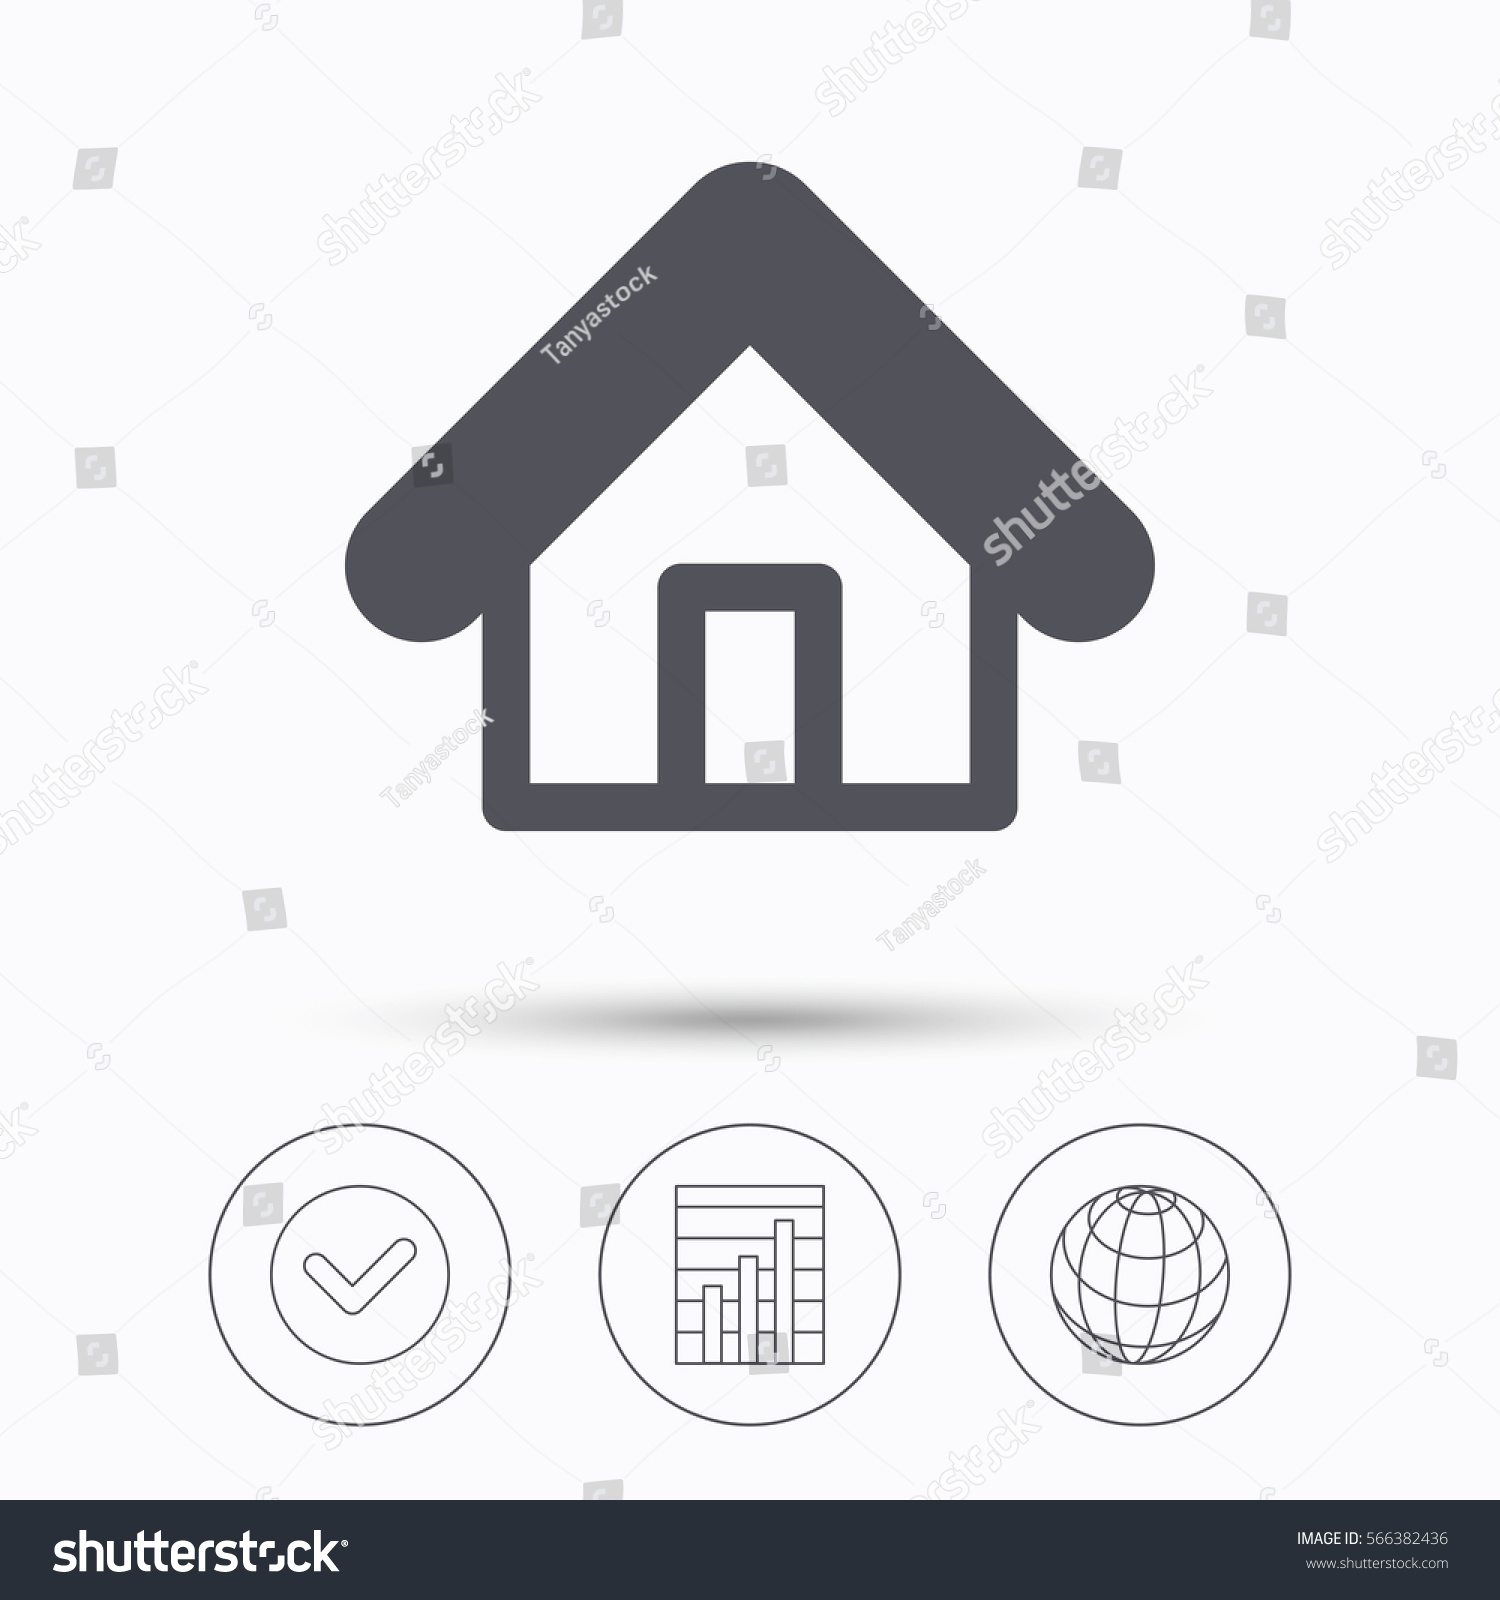 Home Icon House Building Symbol Real Stock Illustration Royalty